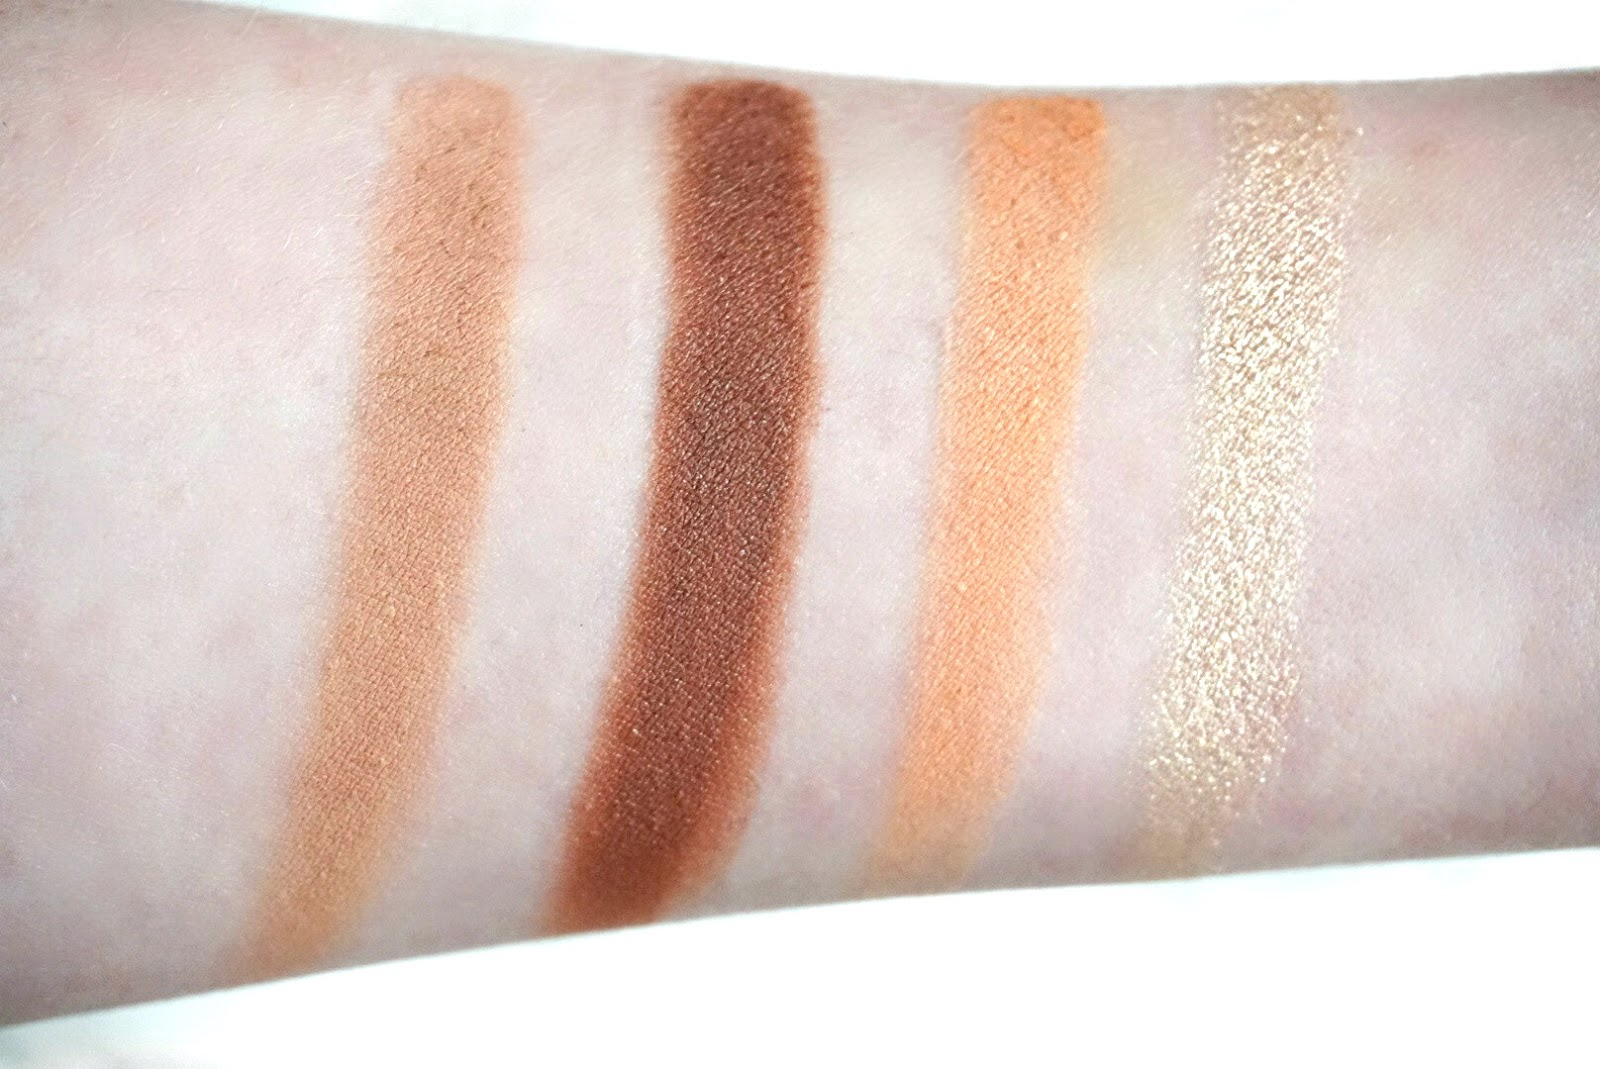 Colourpop Peachy Keen Eyeshadow Swatches